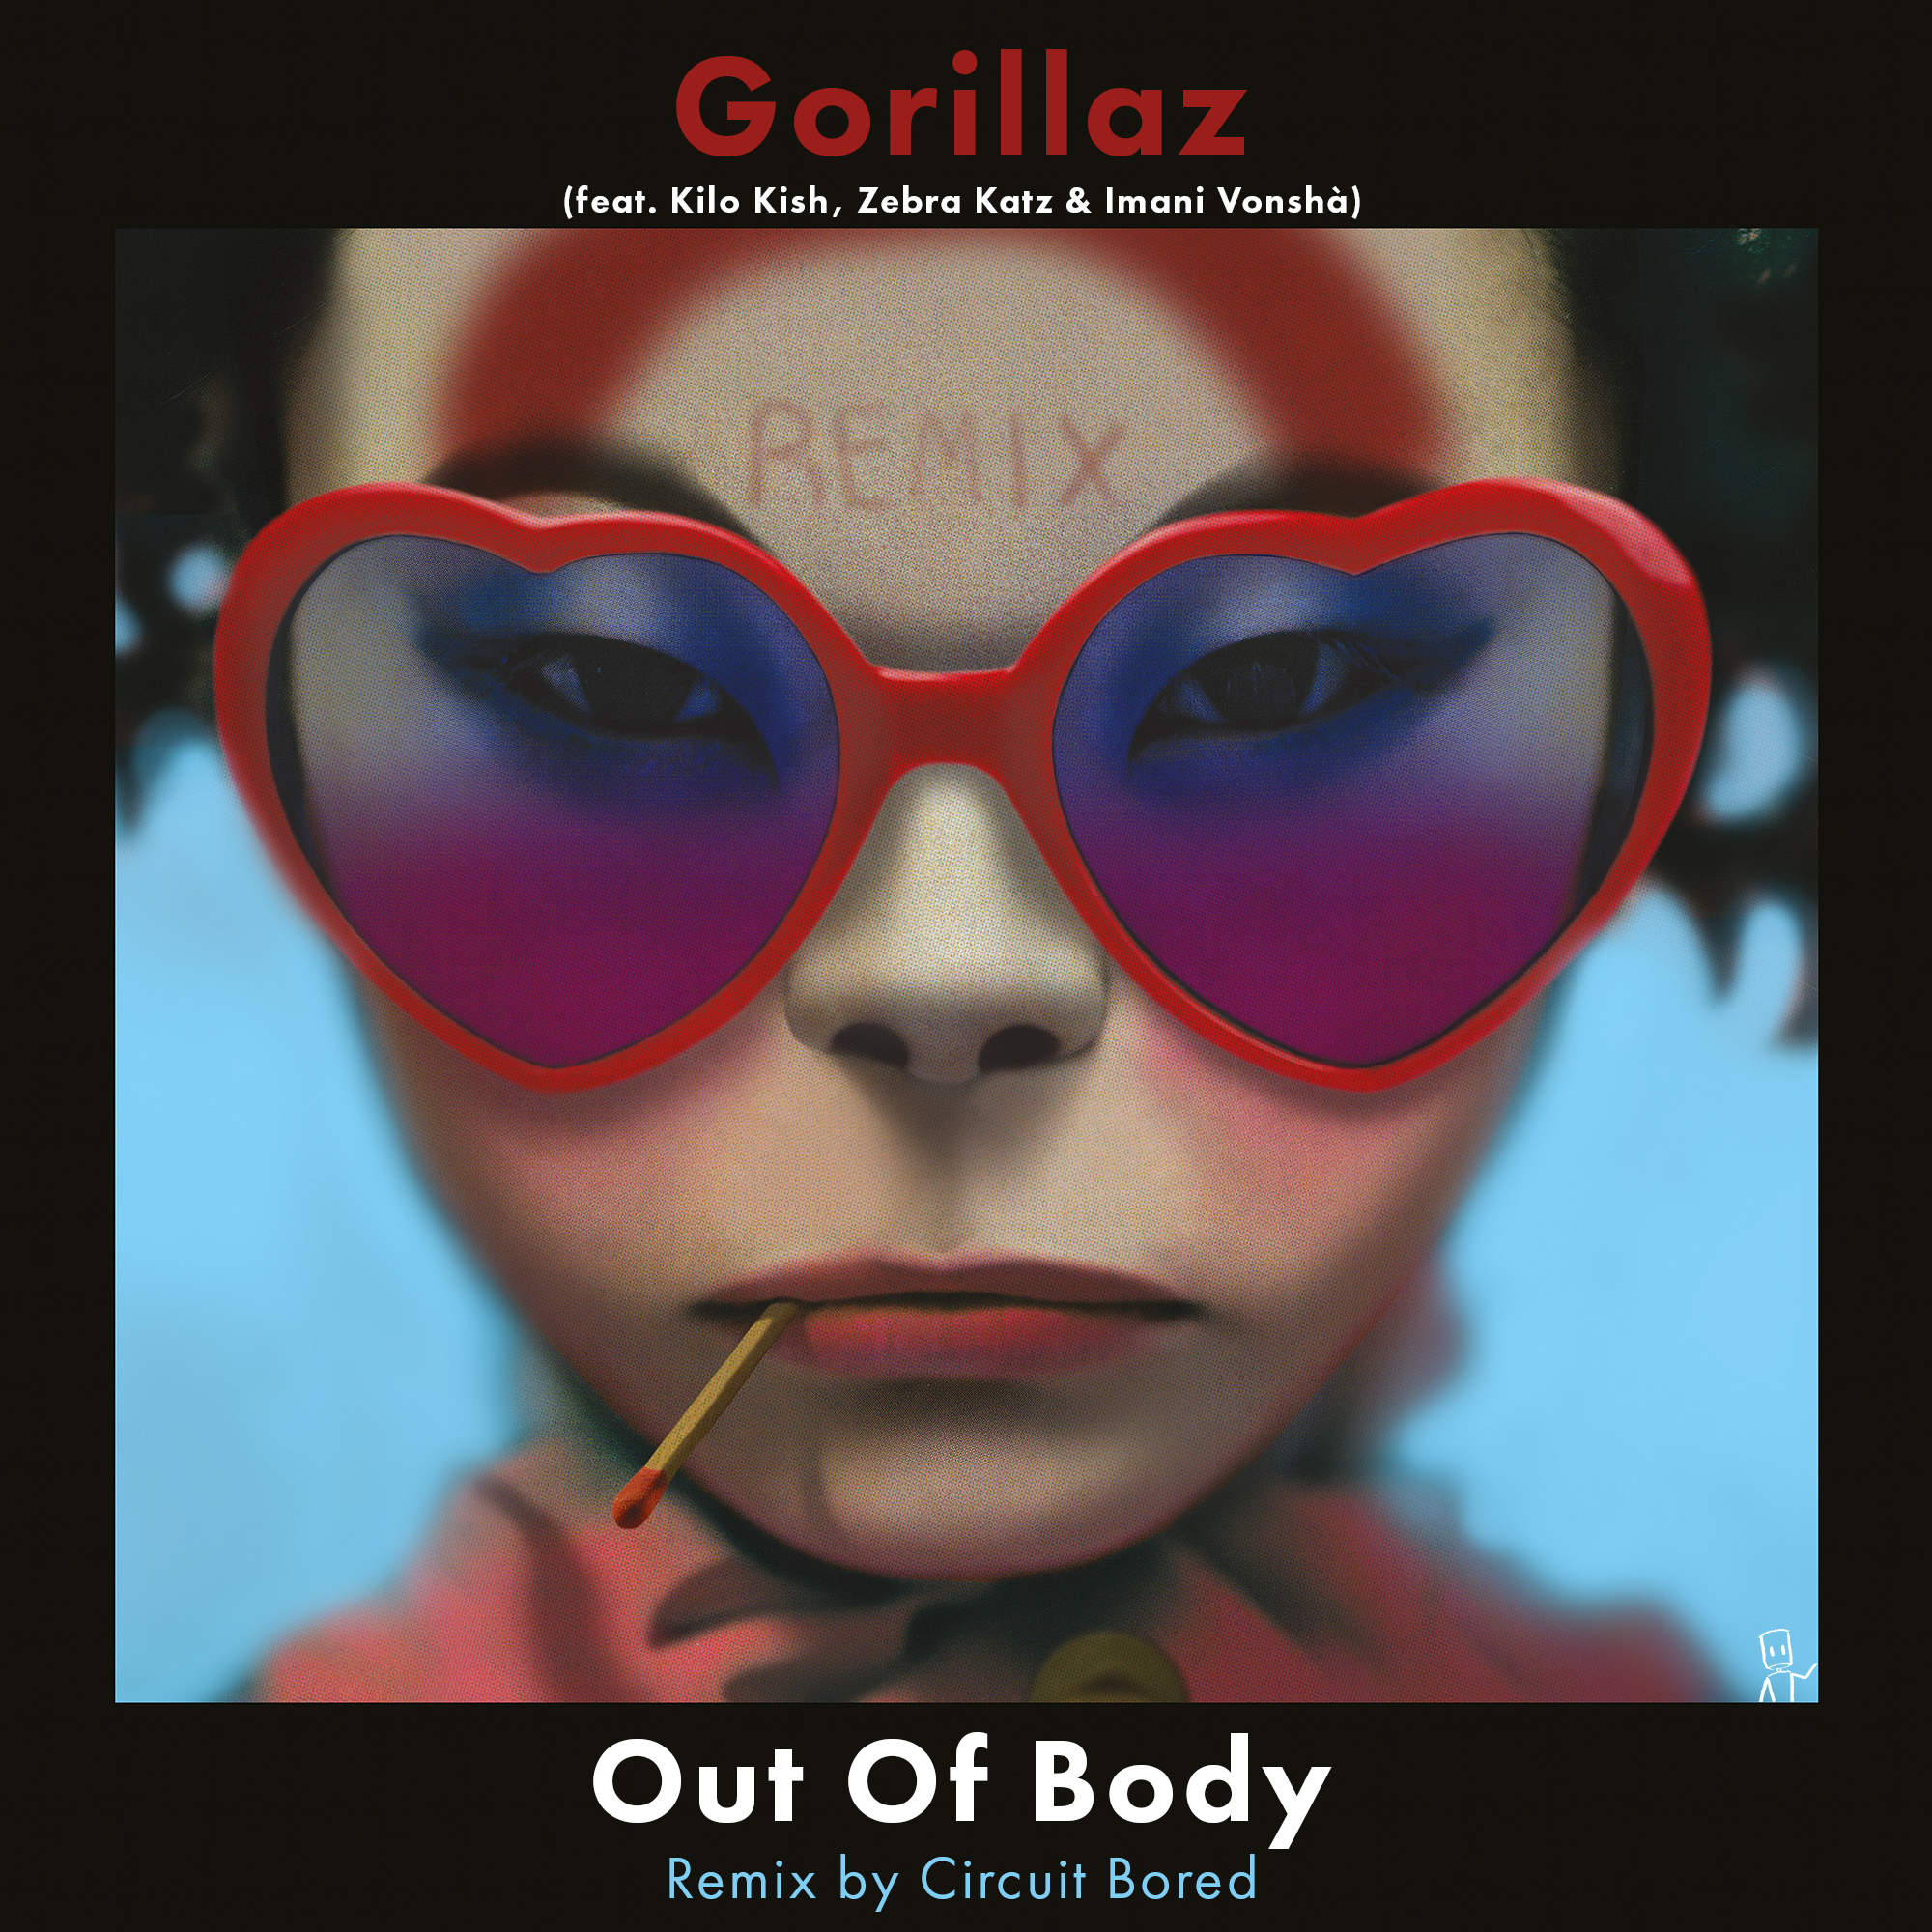 5572337_149487974273_otherGorillaz_Humanz_Album_Packshot.png